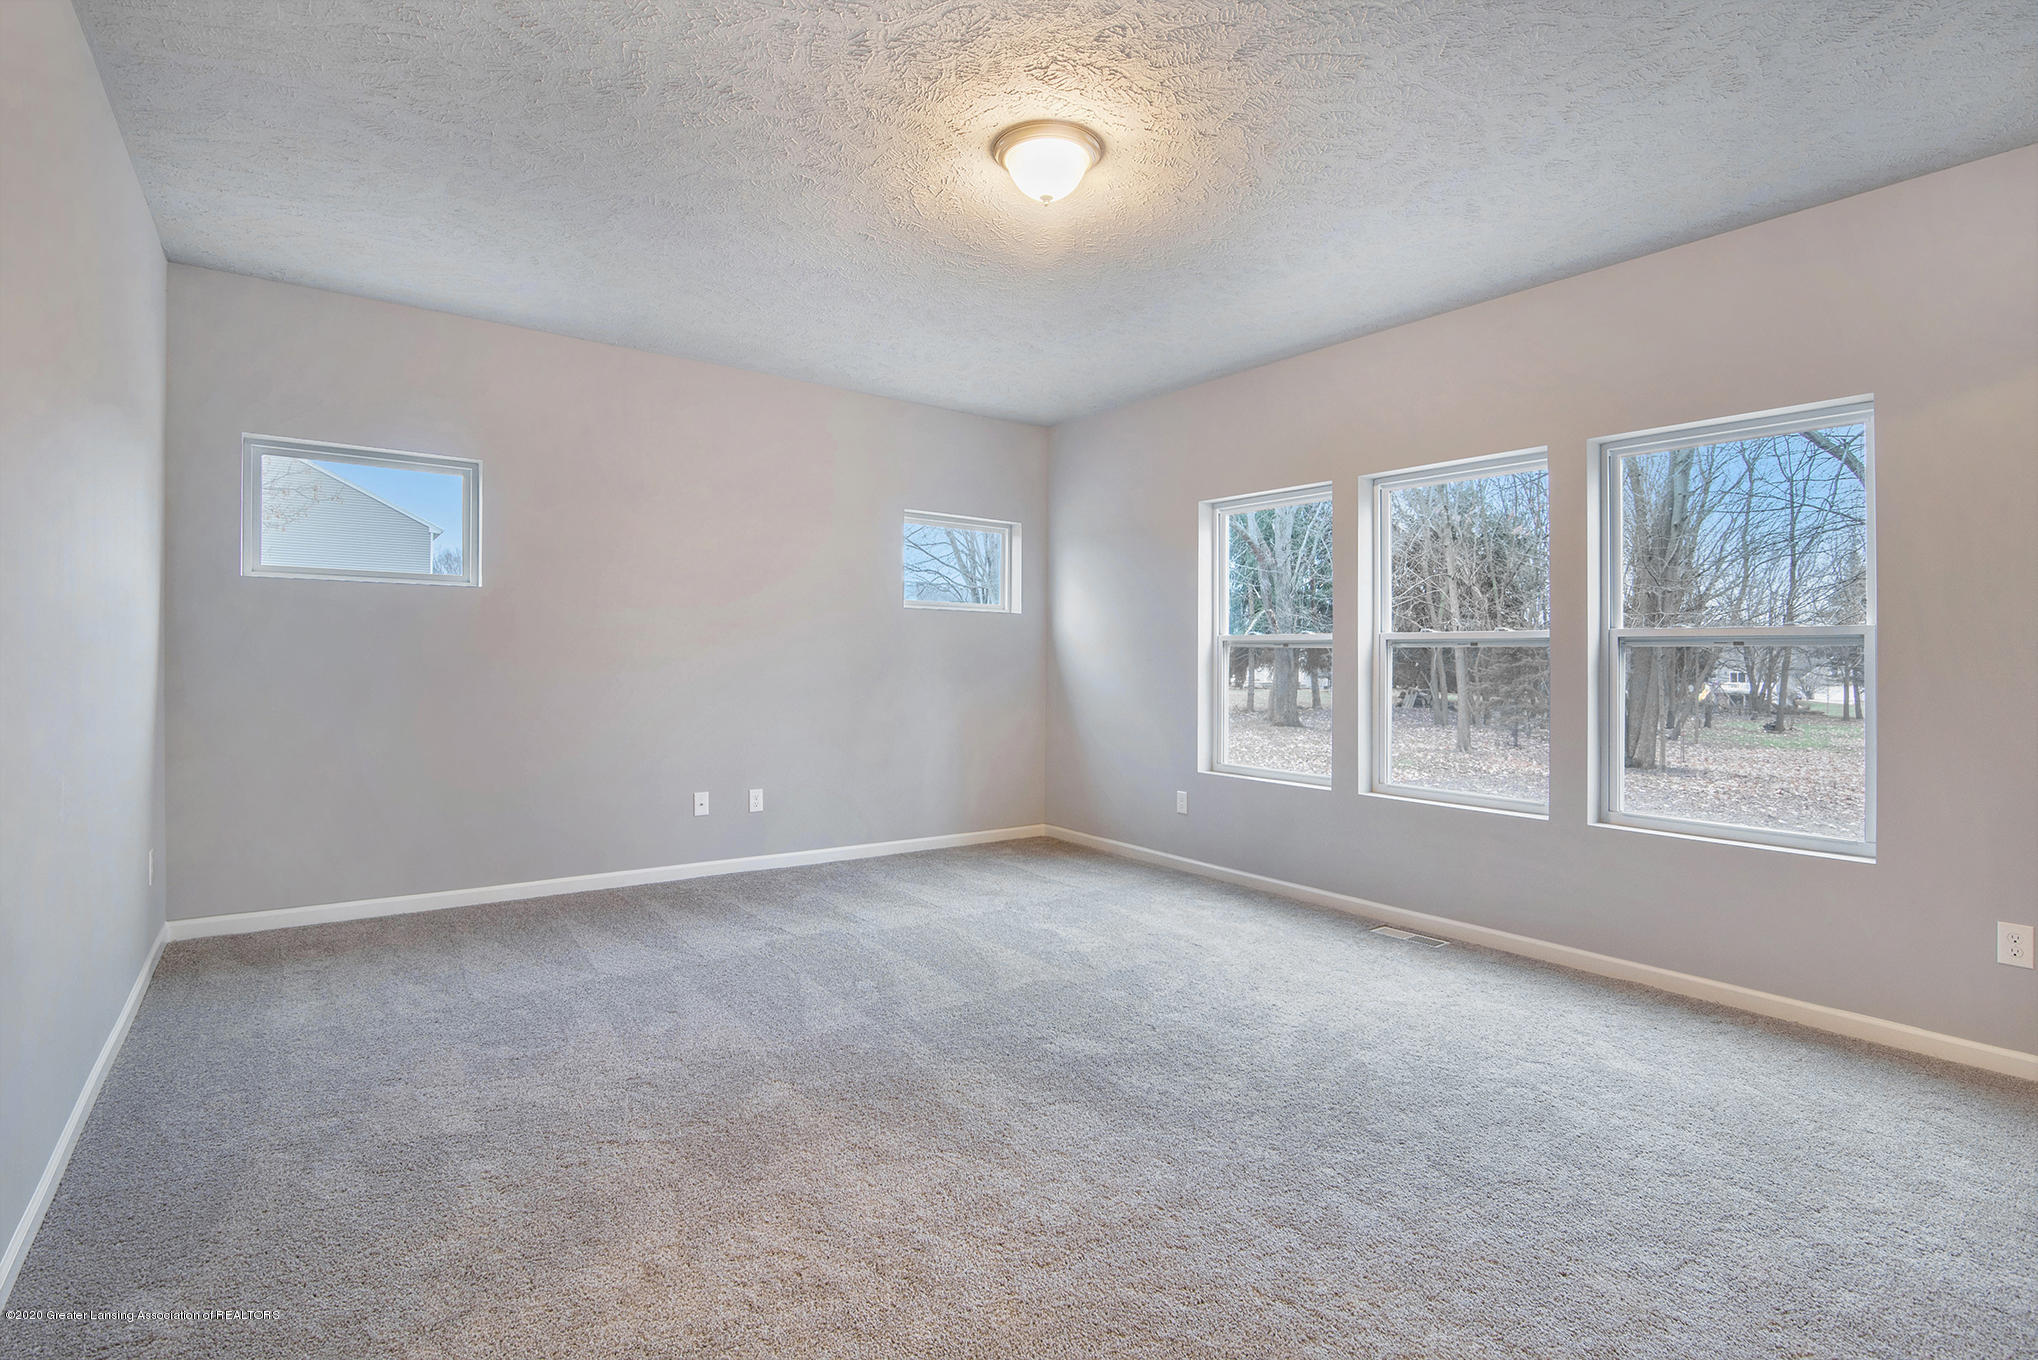 5351 Somerset Dr - GMR081-E2390-Great Room1 - 5